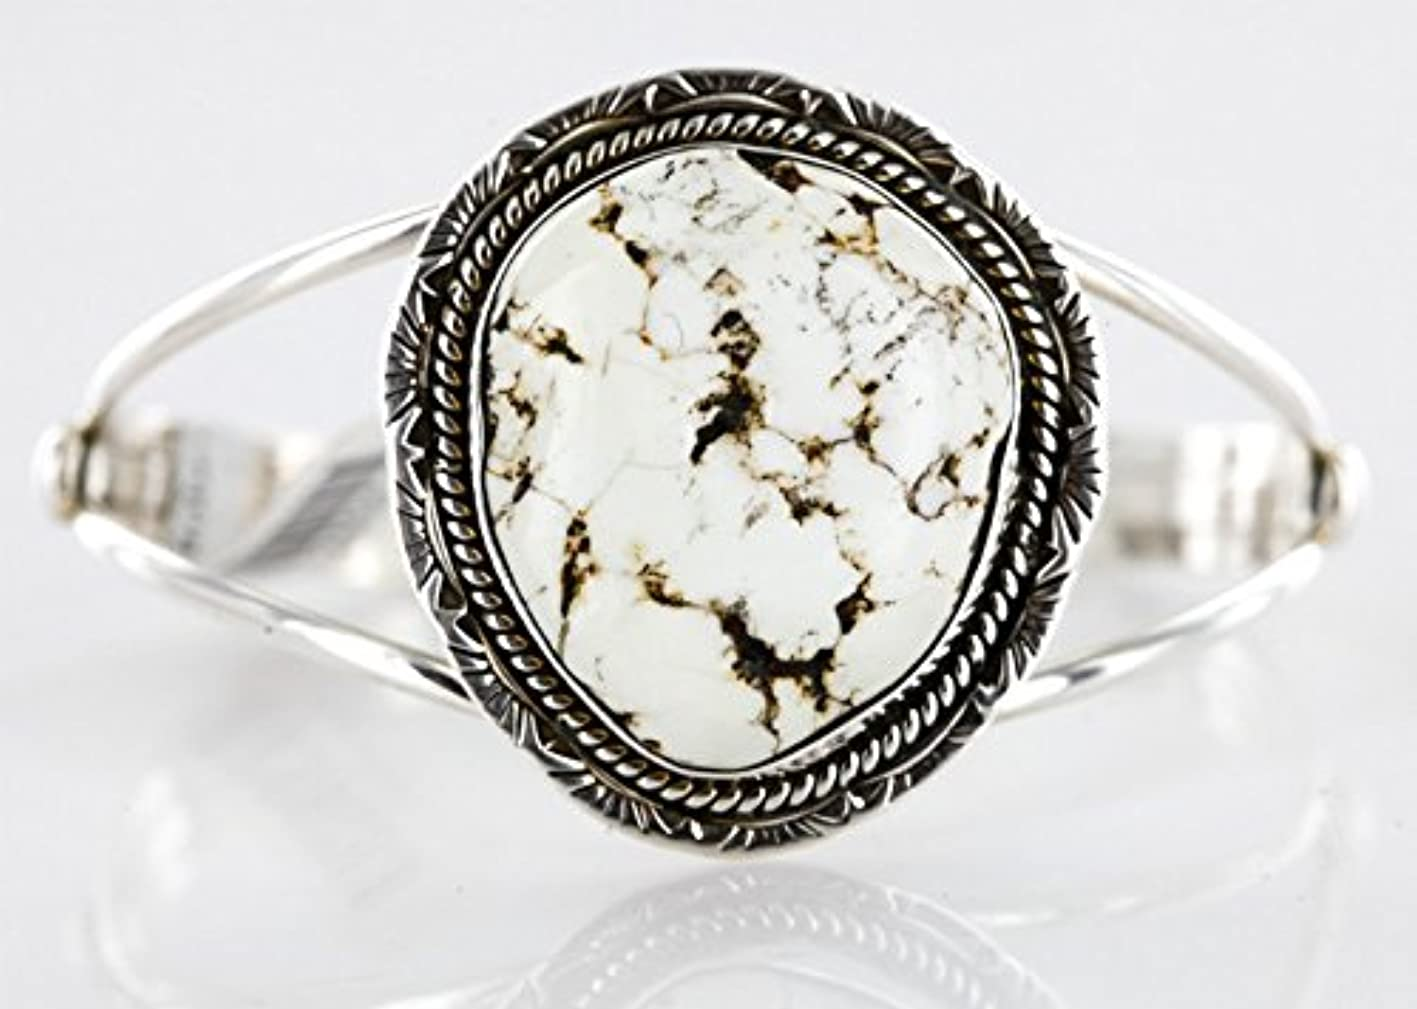 Handmade Certified Authentic Navajo .925 Sterling Silver WHITE Buffalo Turquoise Native American Bracelet hpulpxyxaqk645